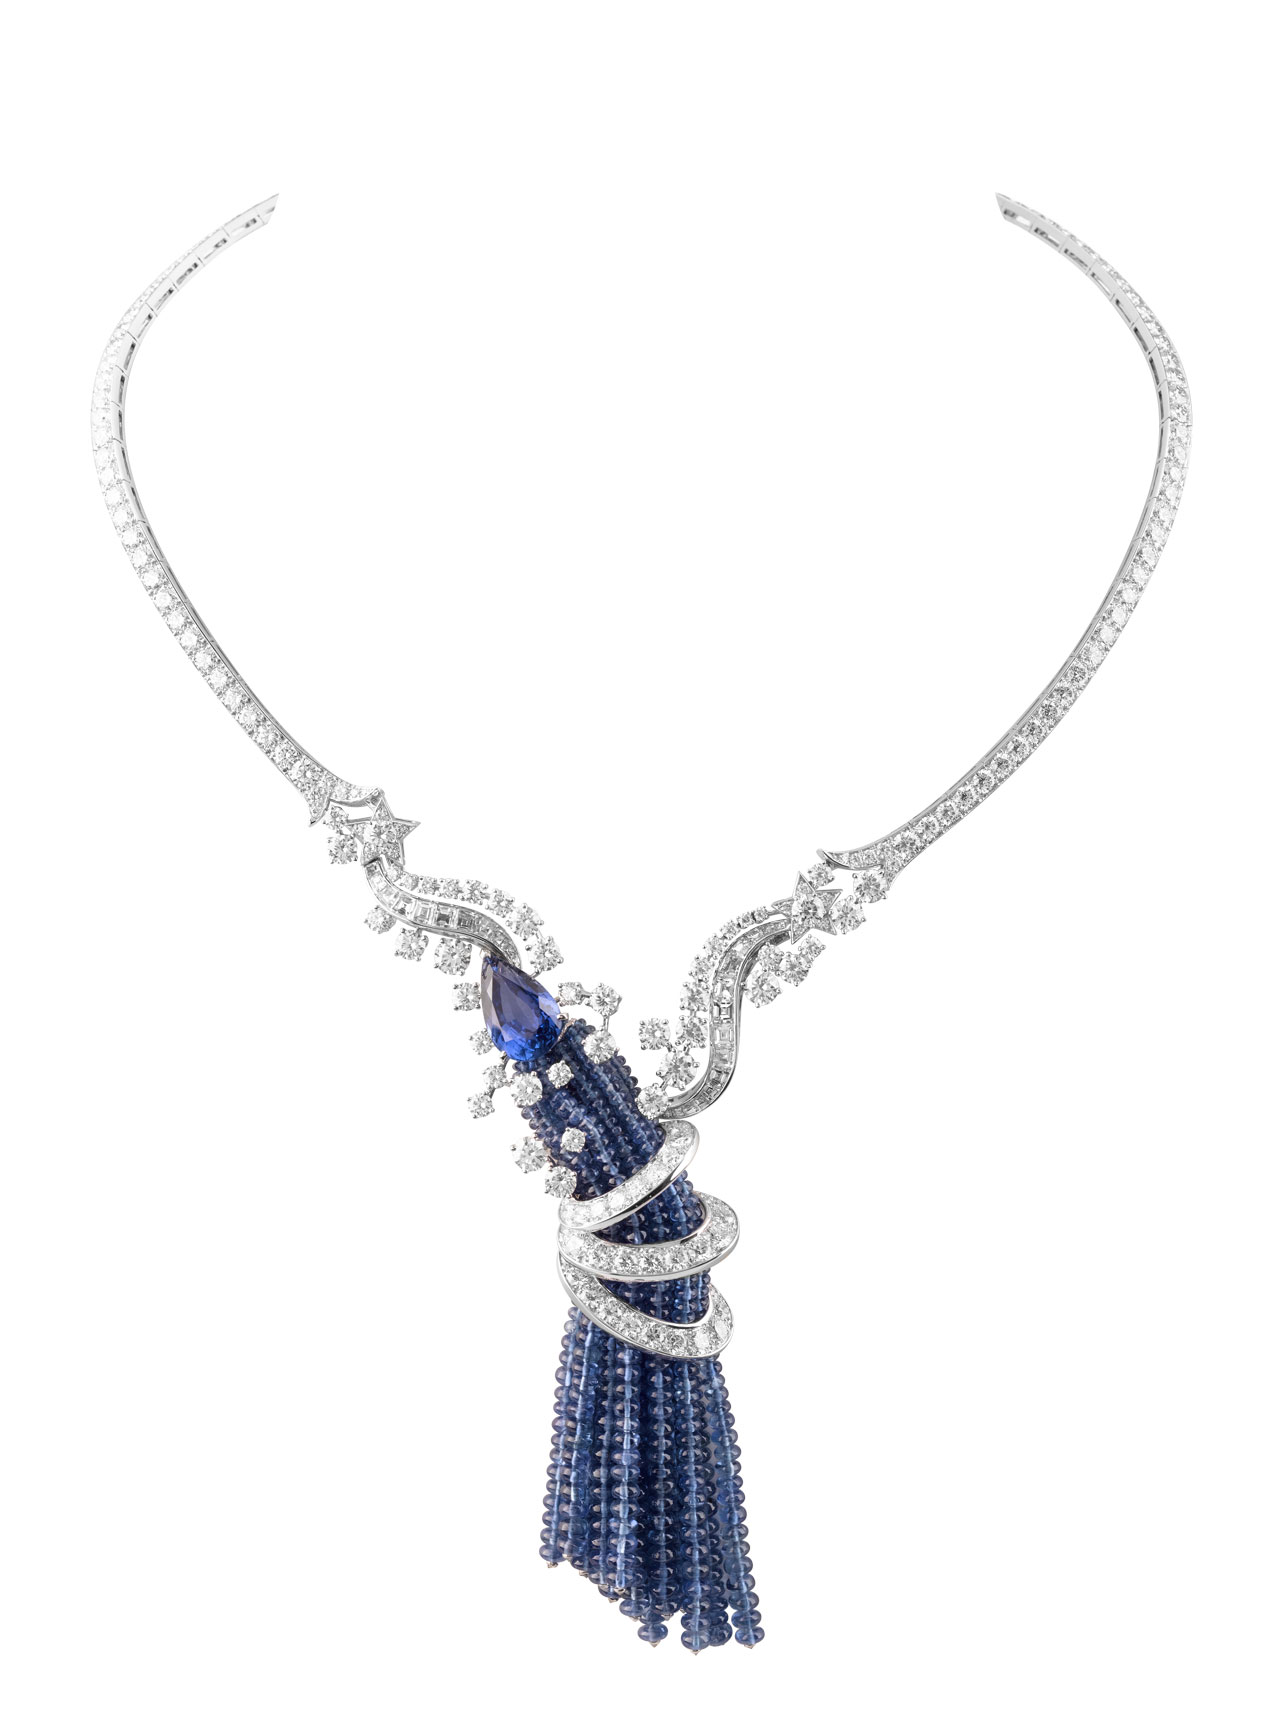 Serenitatis necklace, 2010. Gold, sapphires, diamonds. Photo © Van Cleef & Arpels.